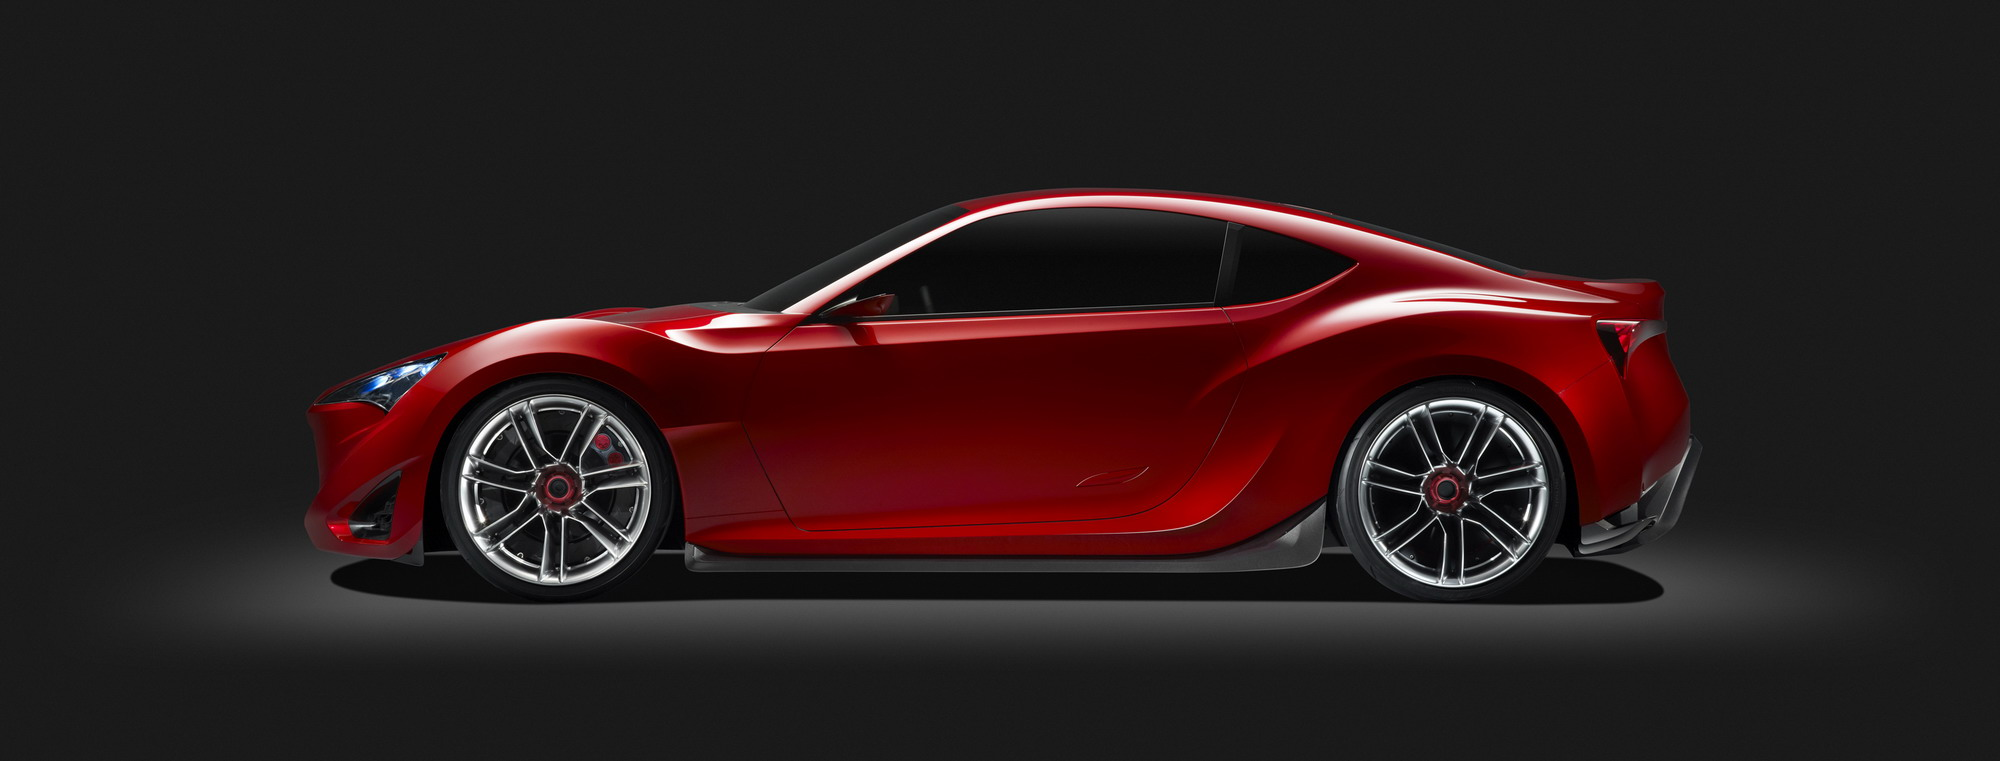 2011 scion fr s concept review top speed. Black Bedroom Furniture Sets. Home Design Ideas